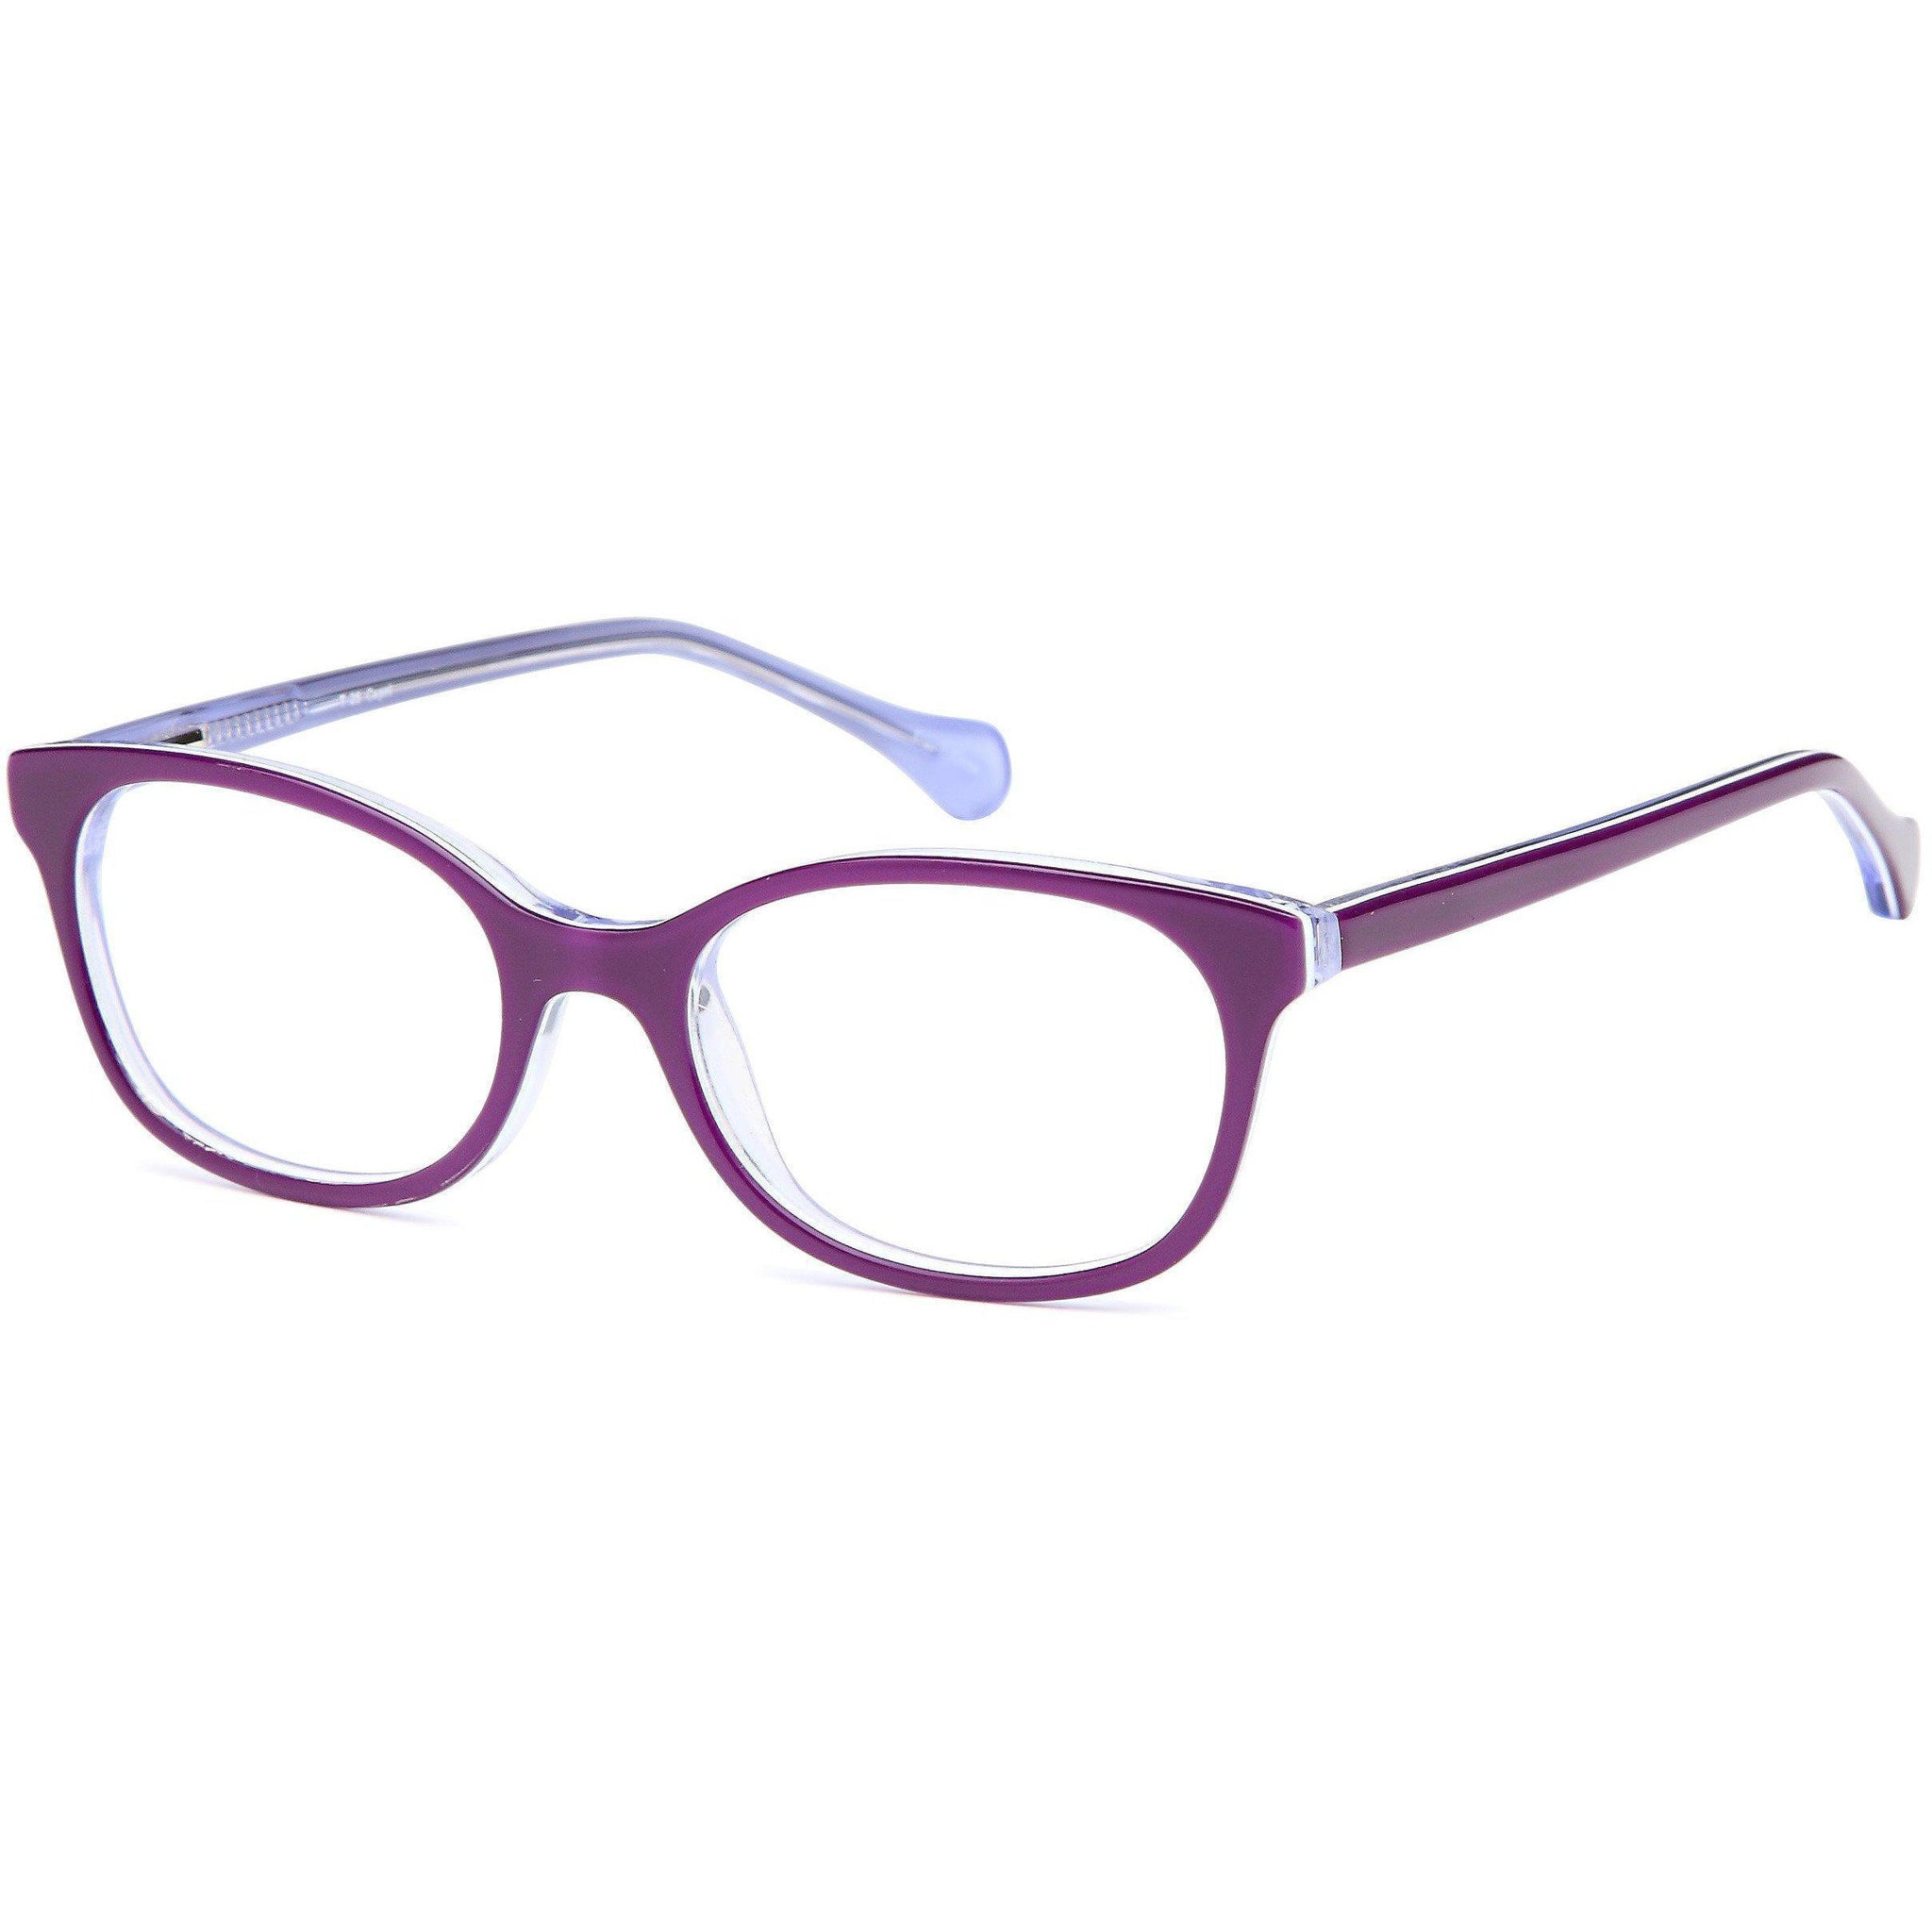 OnTrend Prescription Glasses T 25 Eyeglasses Frames